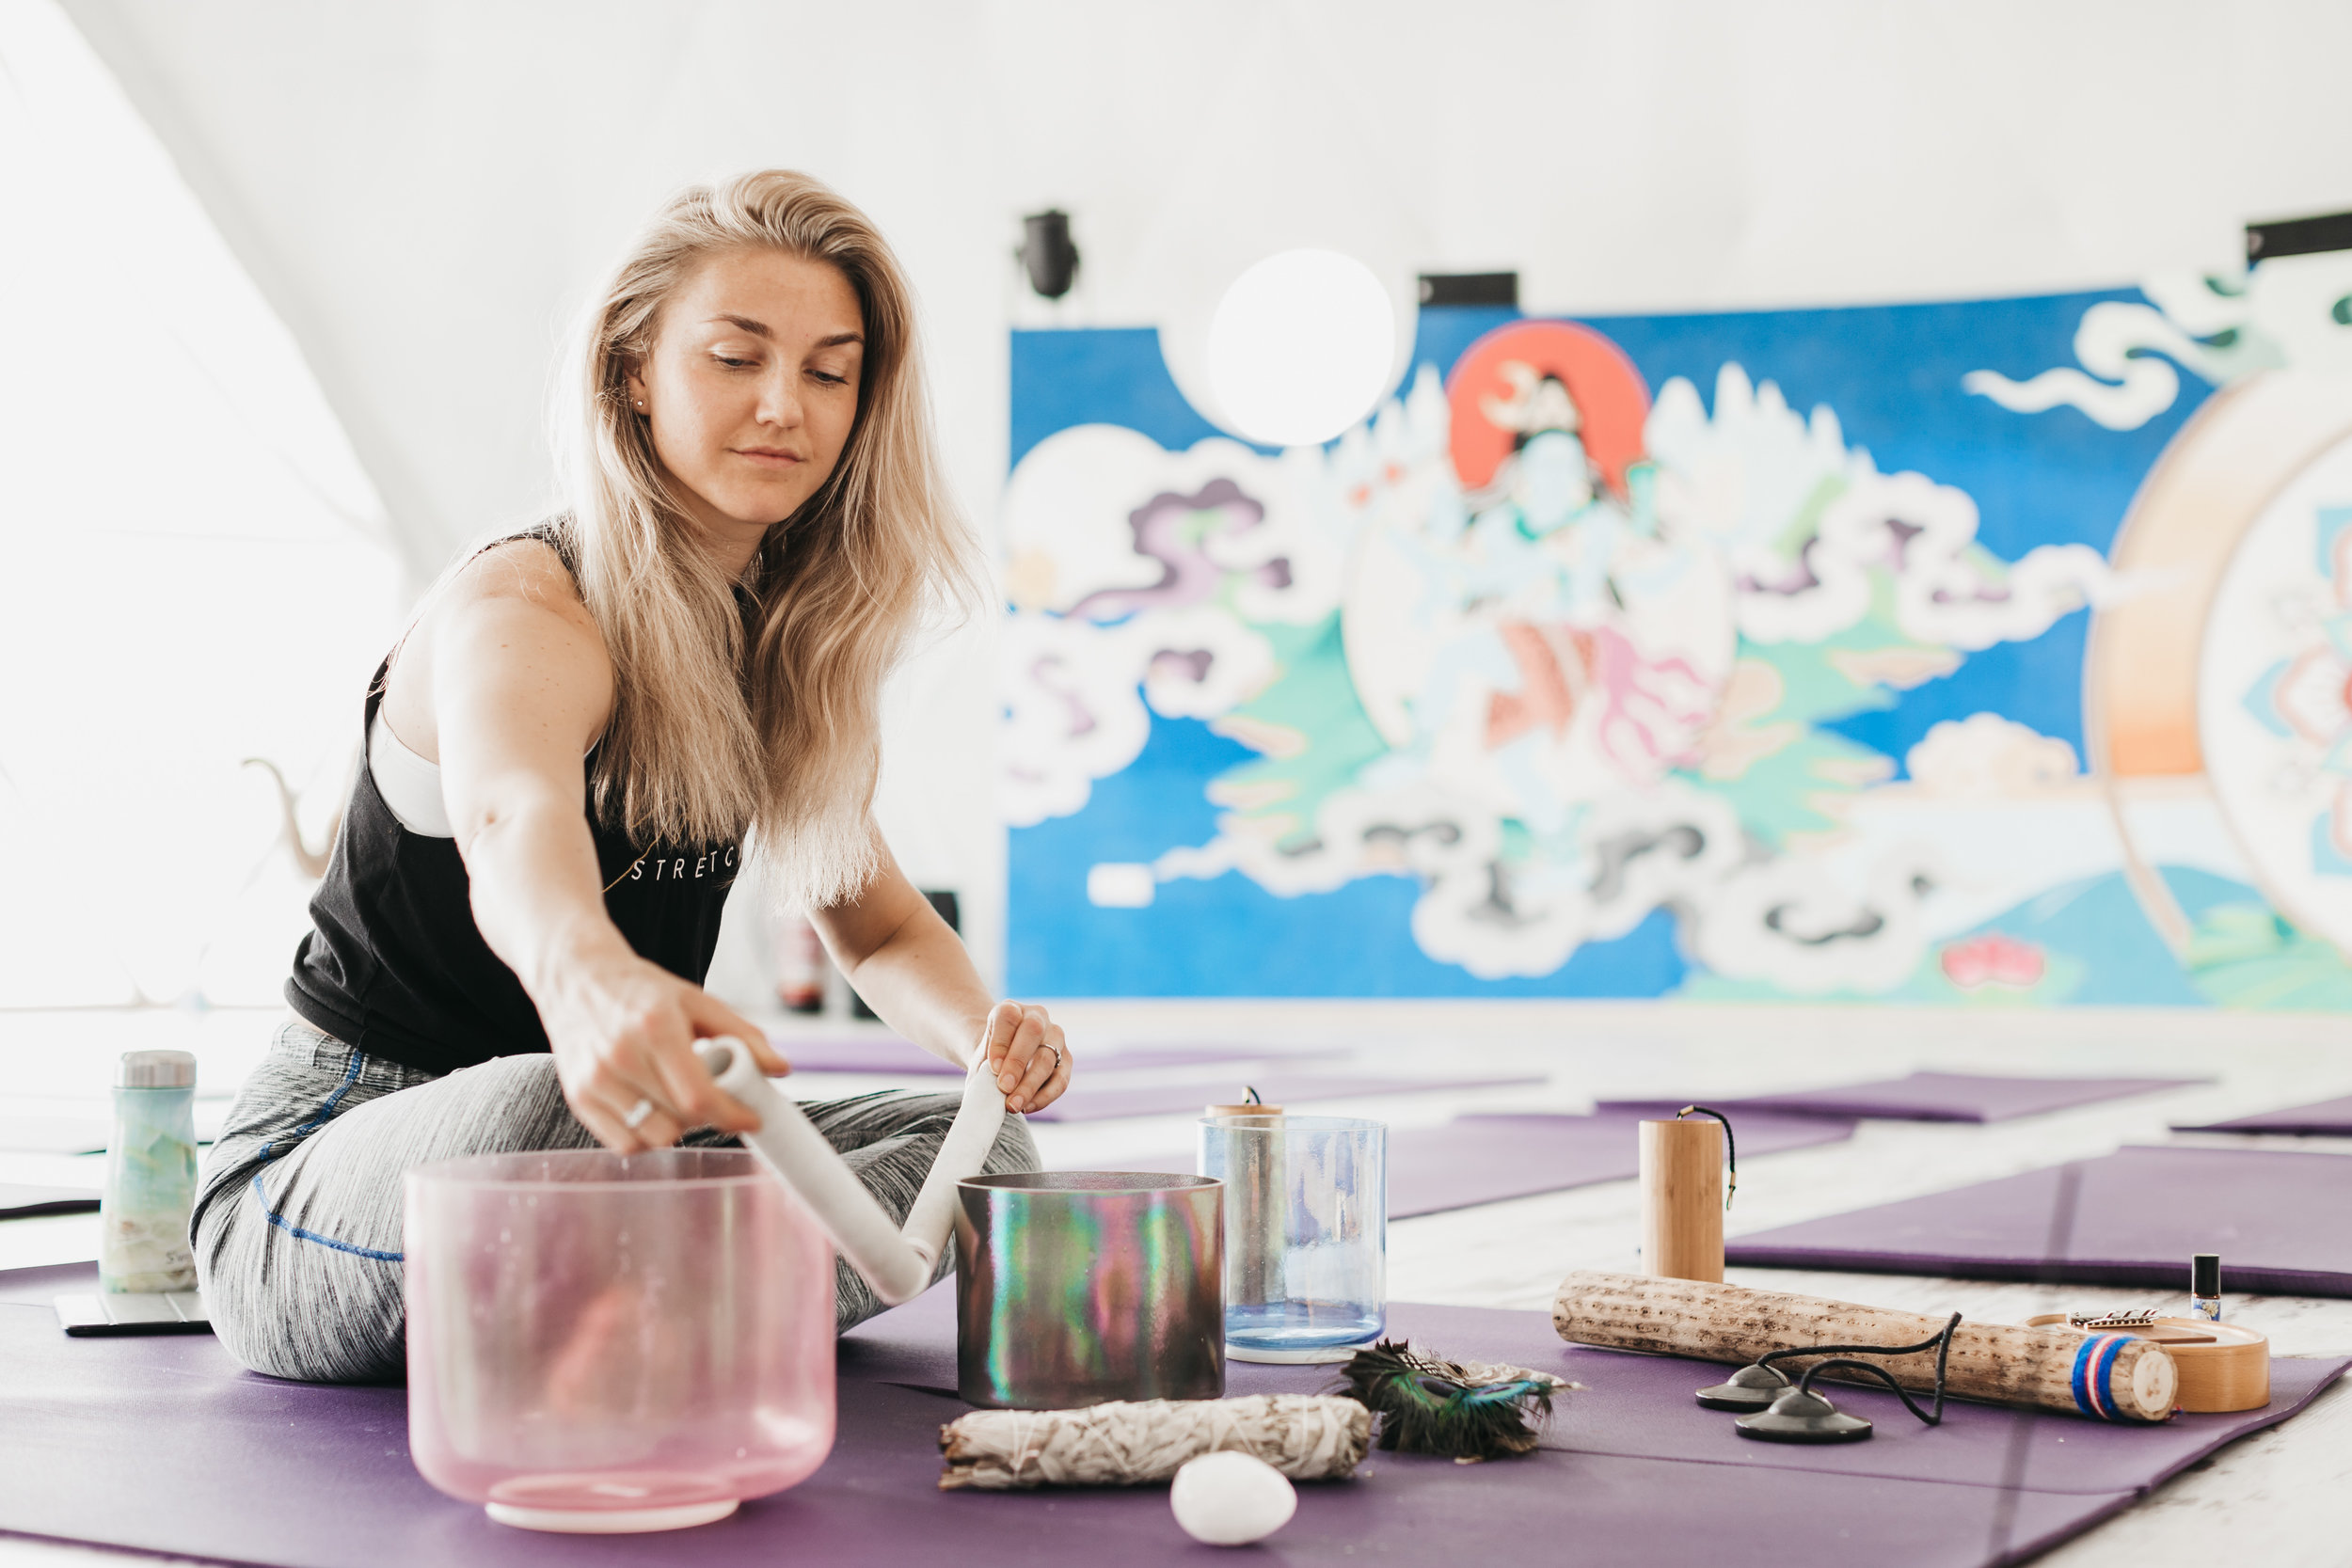 sound journeys - Crystal singing bowls, a voice that has sung in front of 20,000 and other magical instruments; what can you expect from a sound journey with Holly?